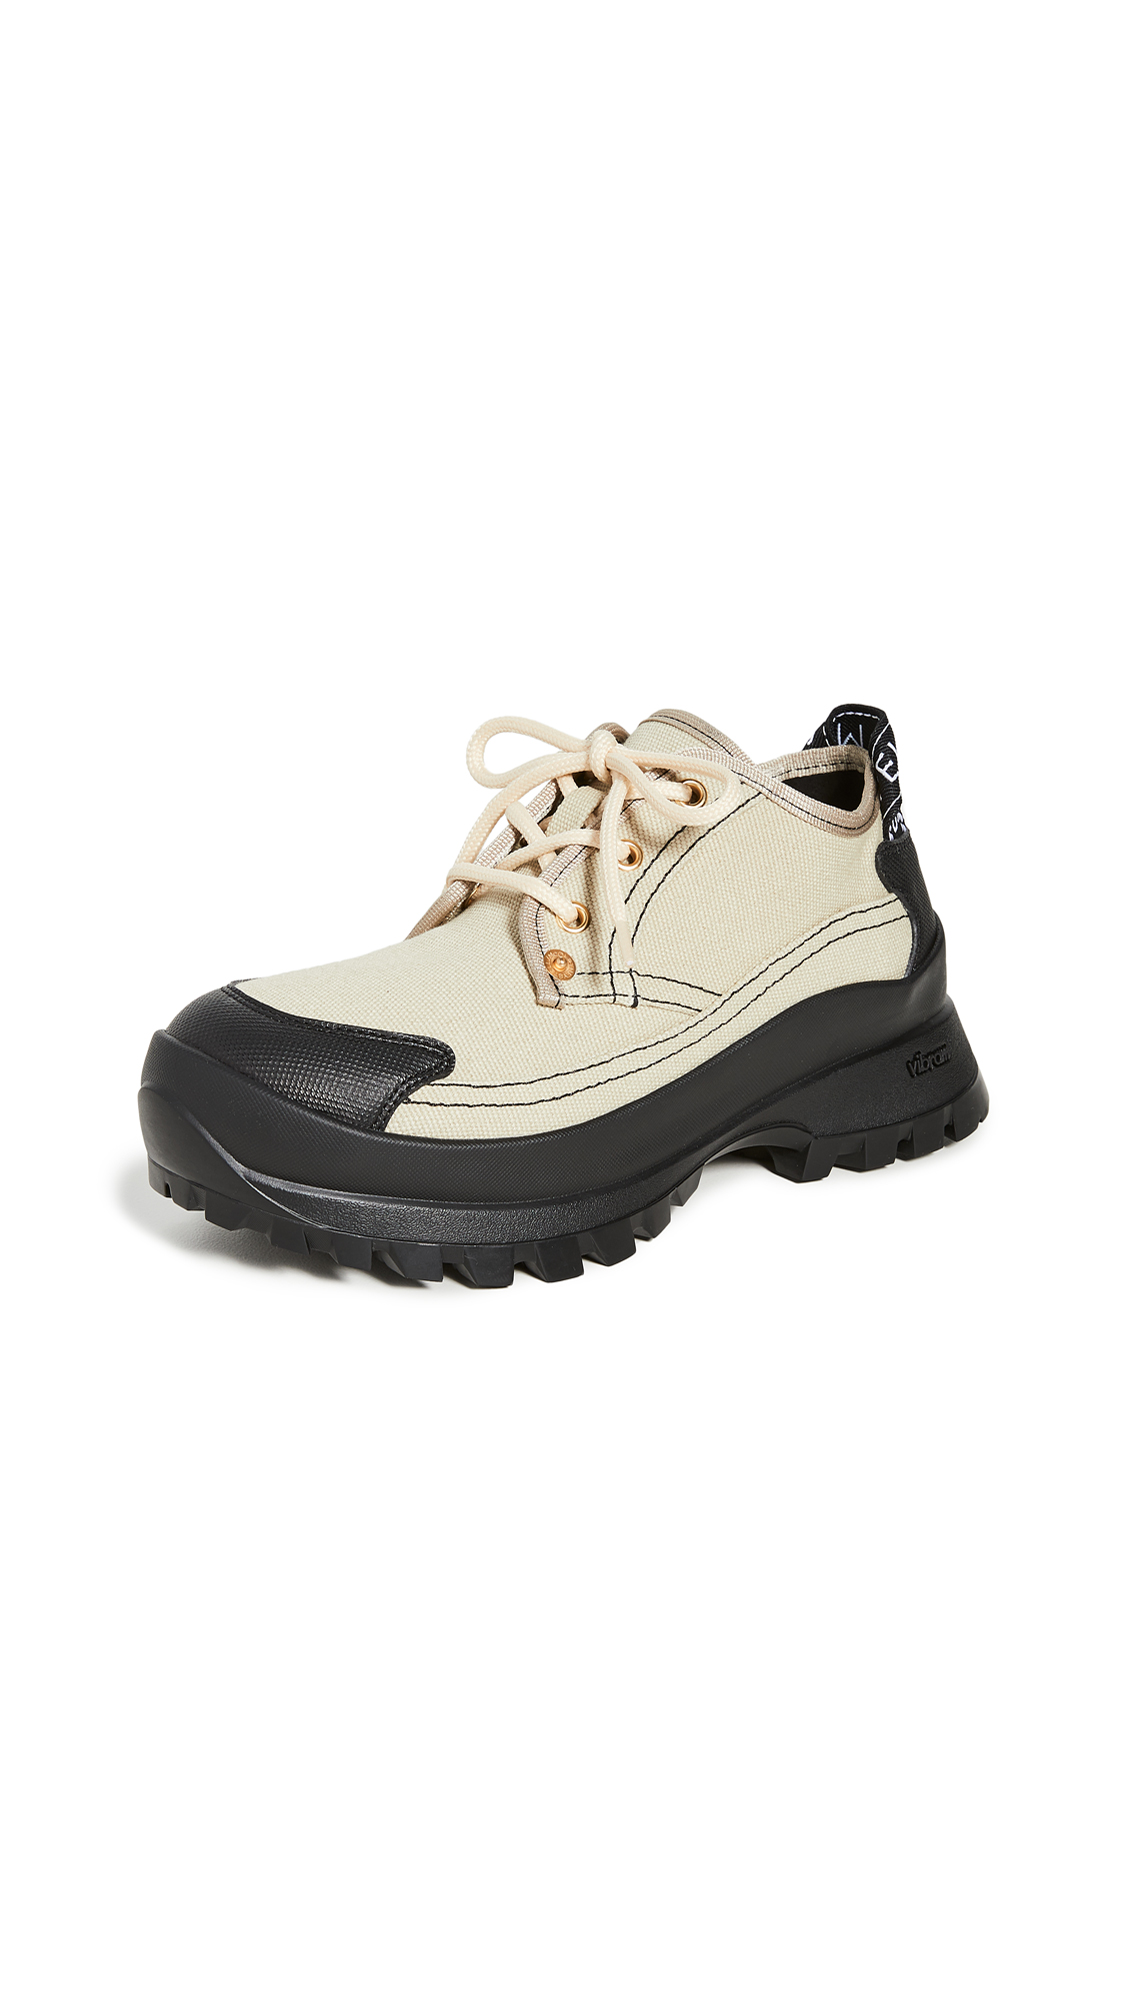 Buy Stella McCartney Low Chunky Sneaker Boots online, shop Stella McCartney